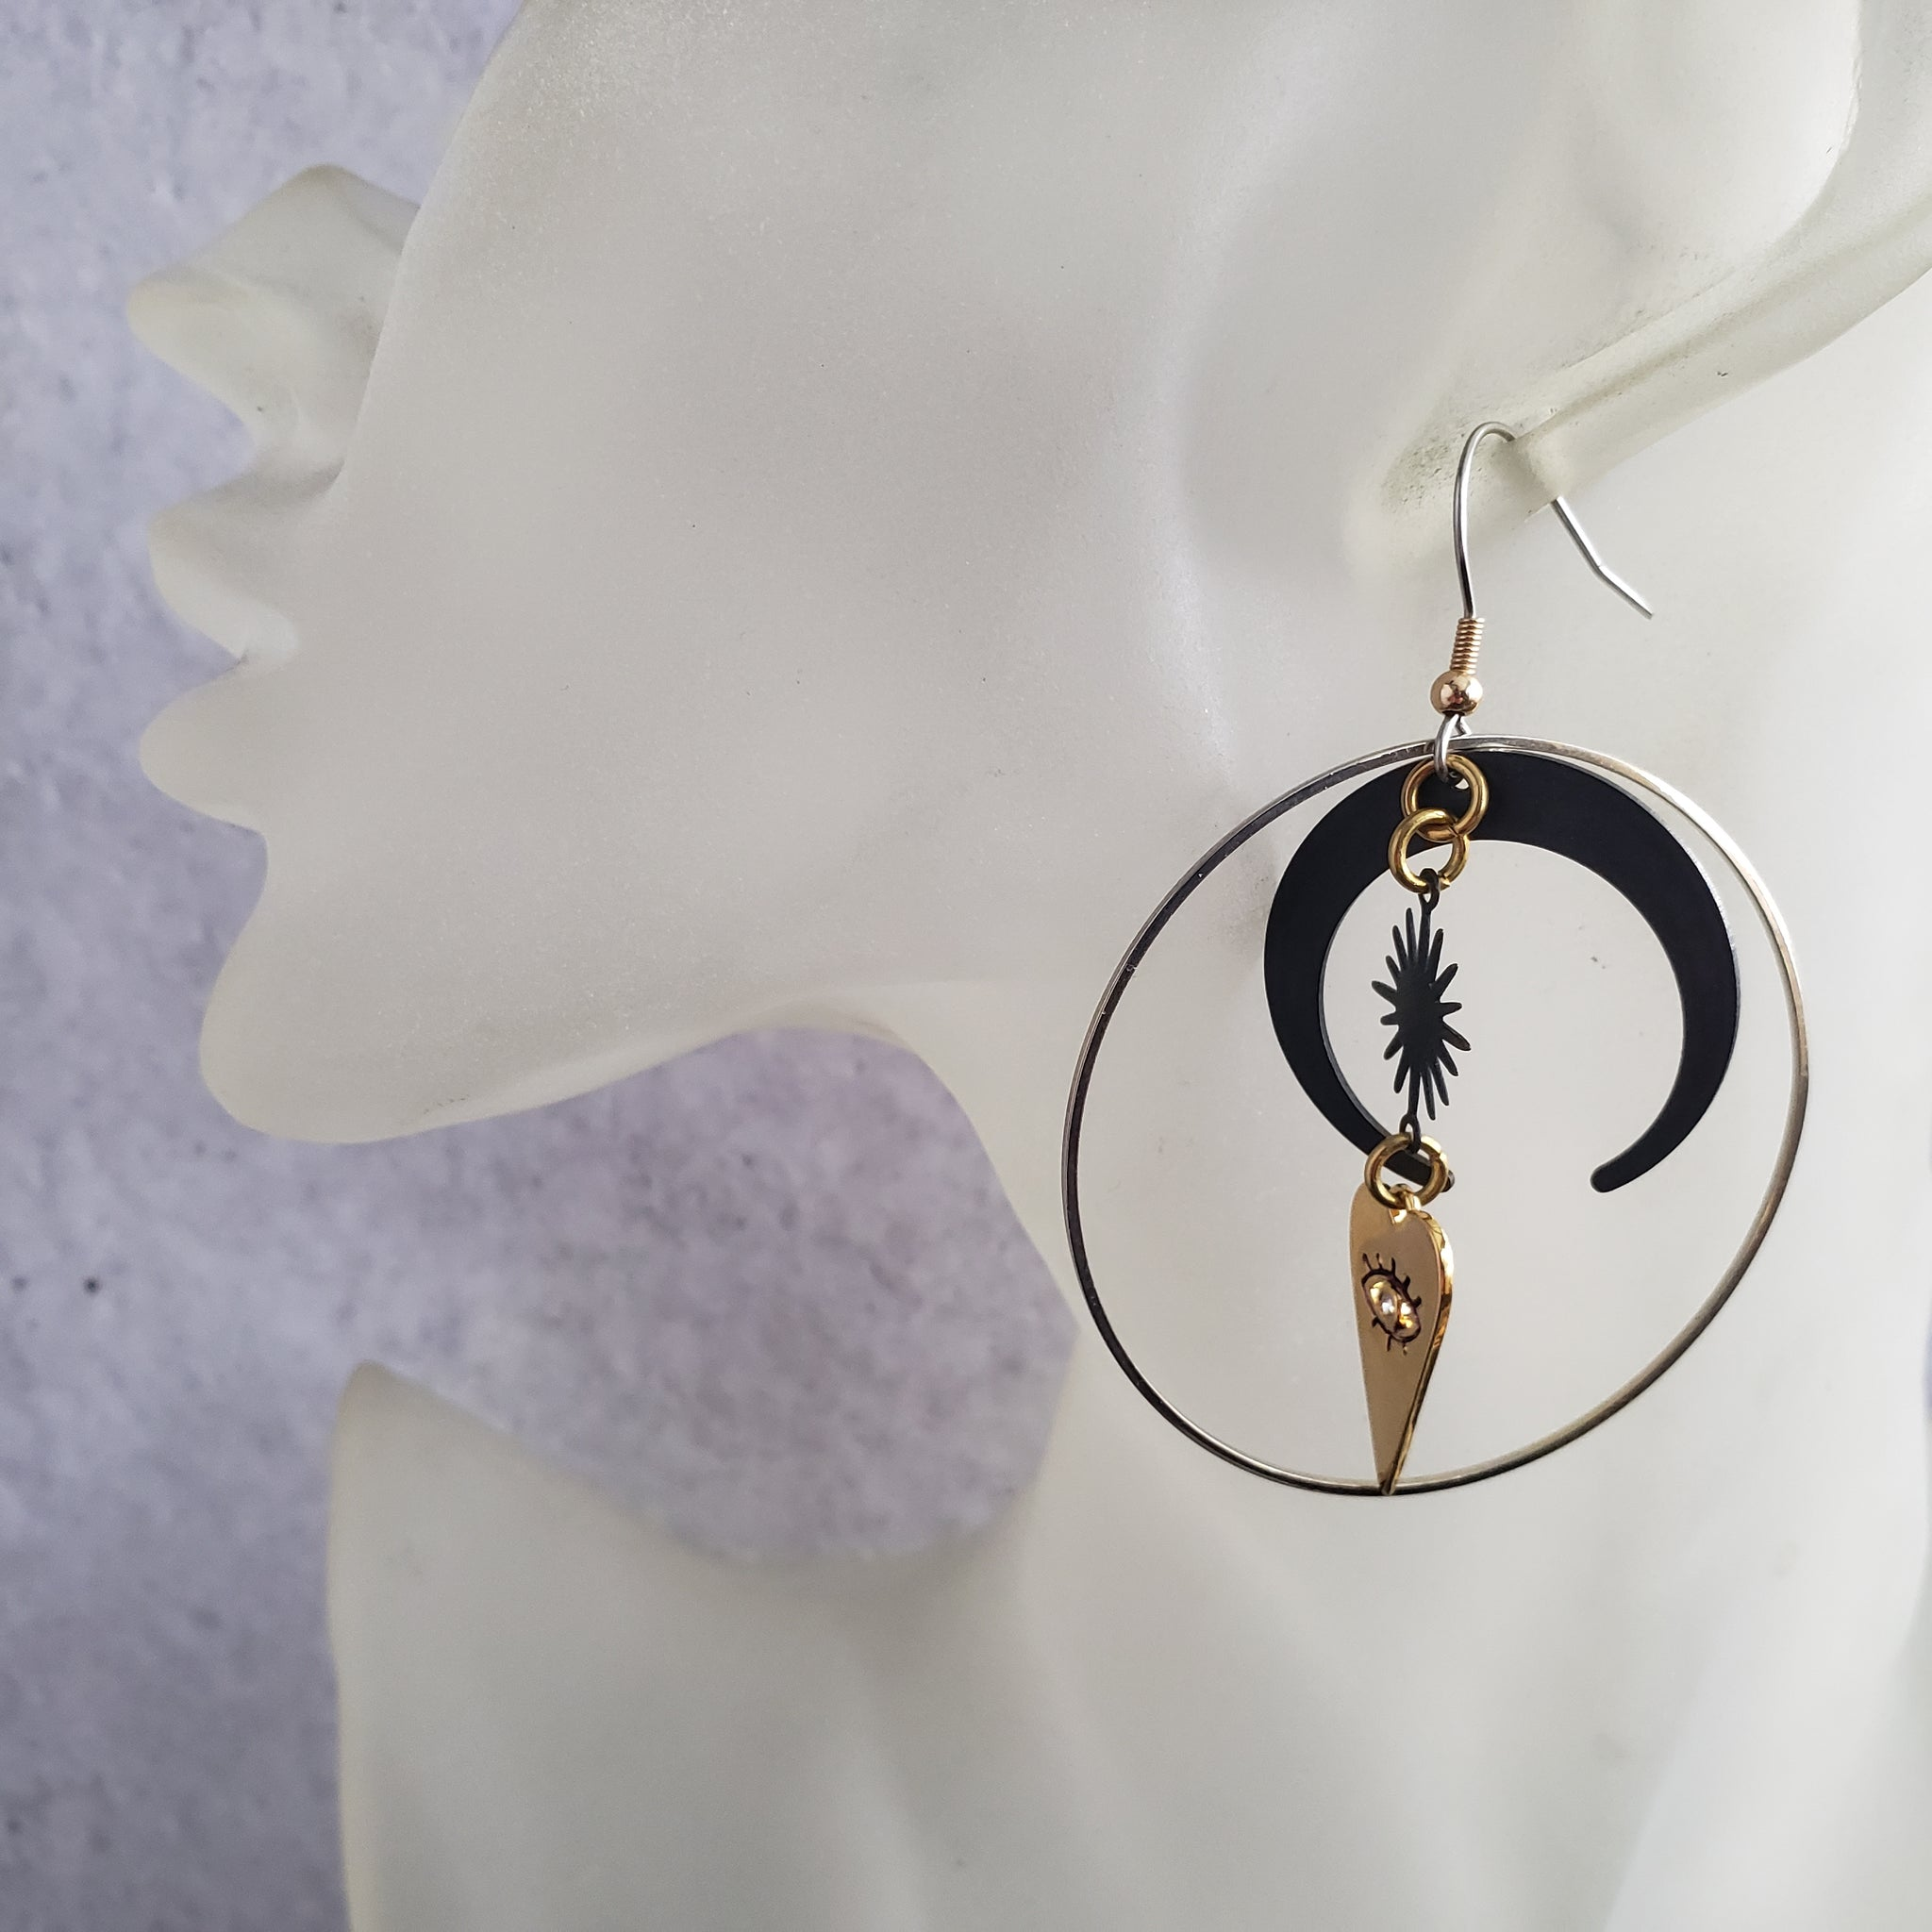 Elemental Metals Collection ◇ Eye♡You ◇ Celestially-Inspired Brass Earrings